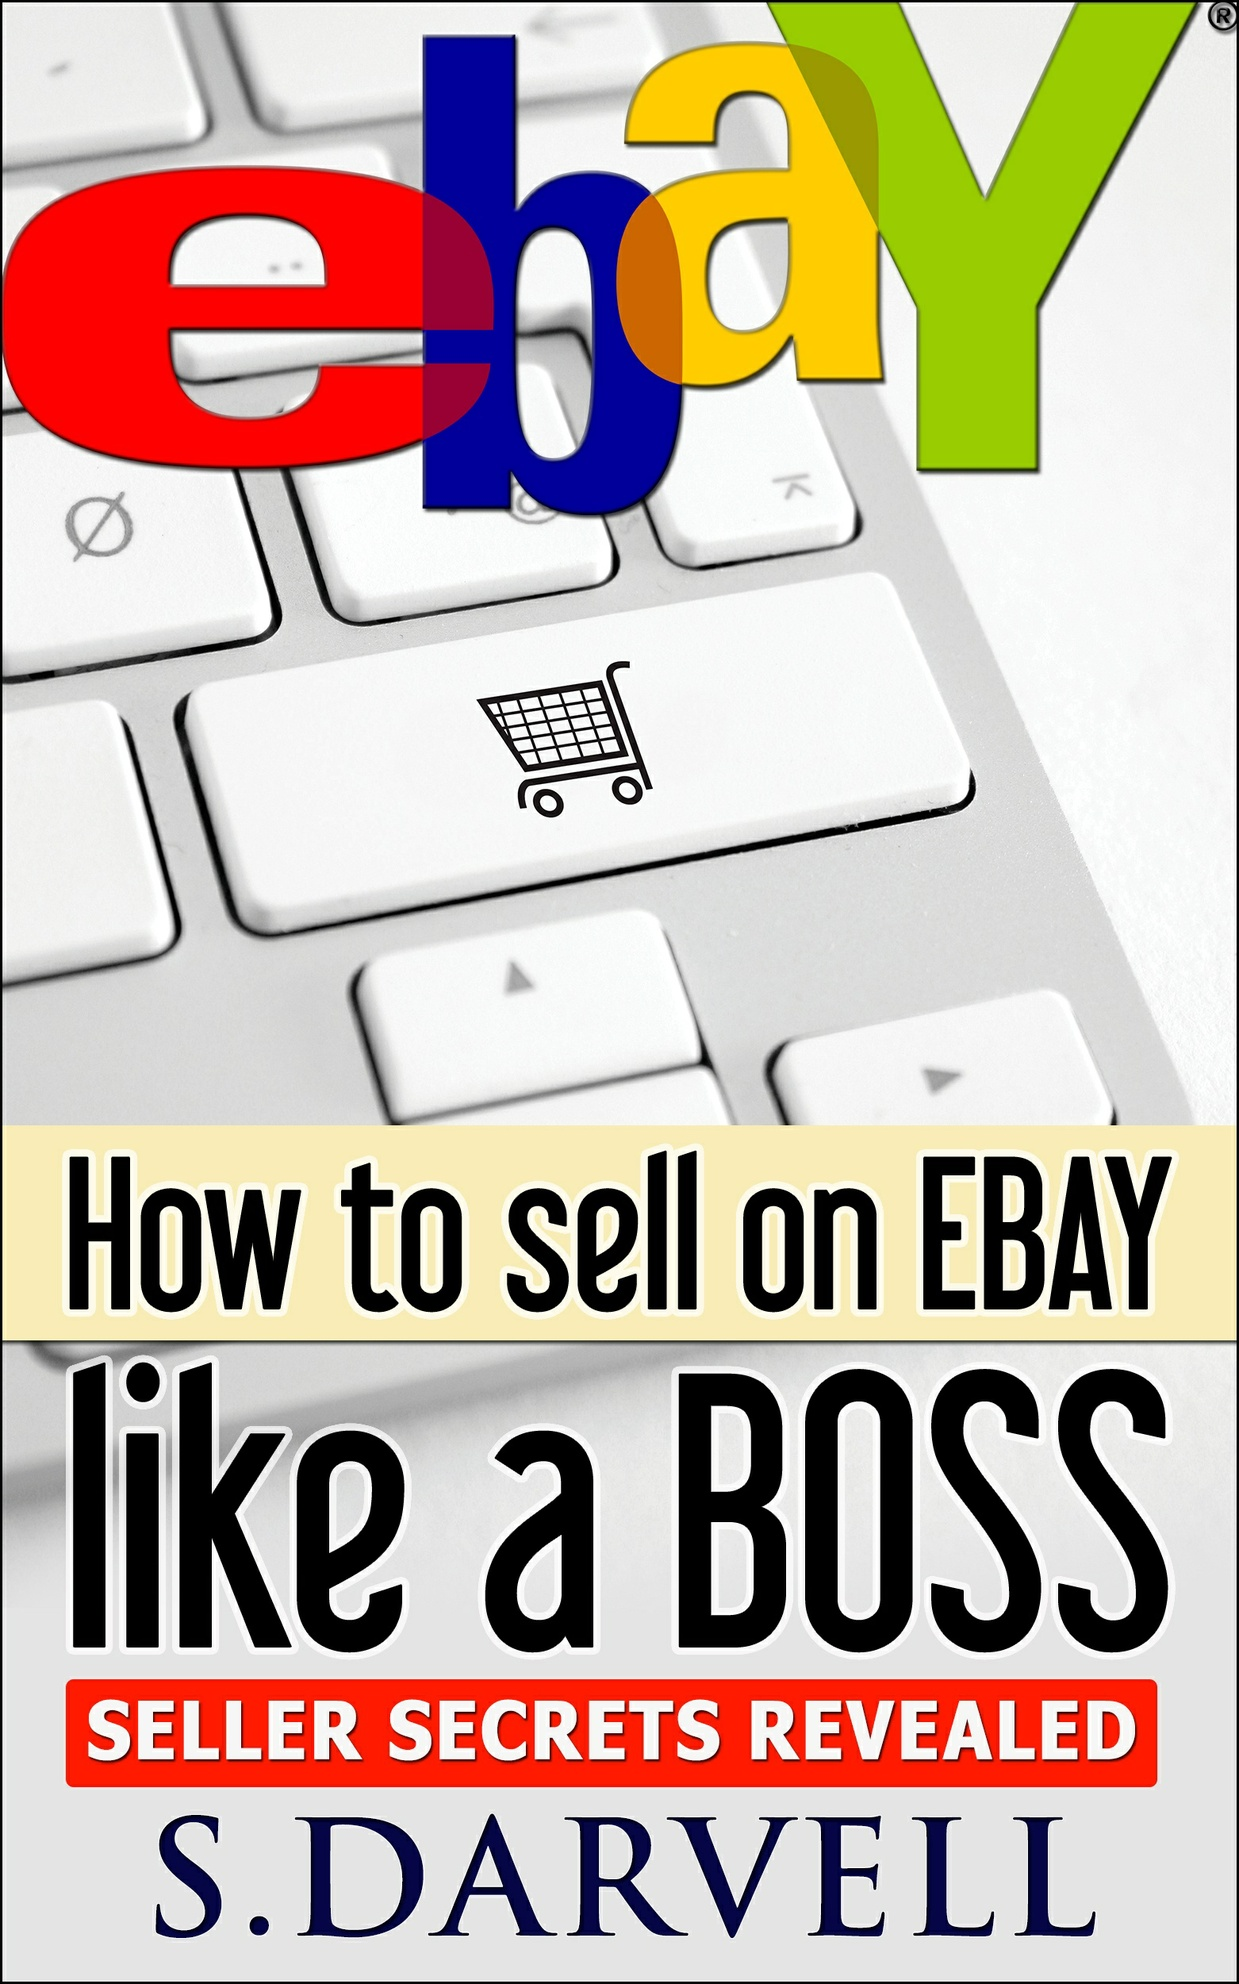 How to sell on ebay like a boss: Seller secrets revealed